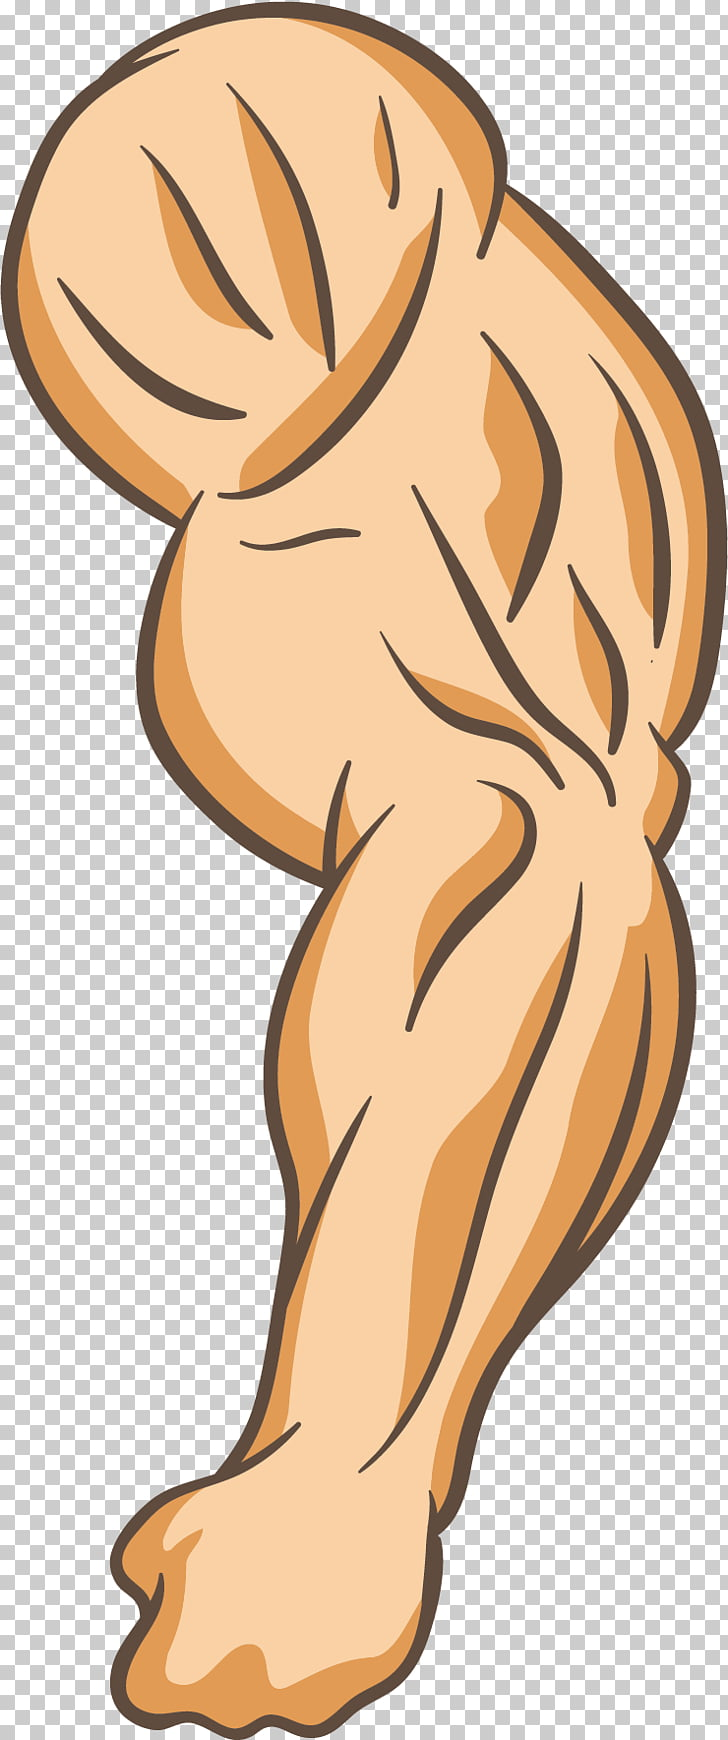 Arm Computer file, Strong left arm PNG clipart.